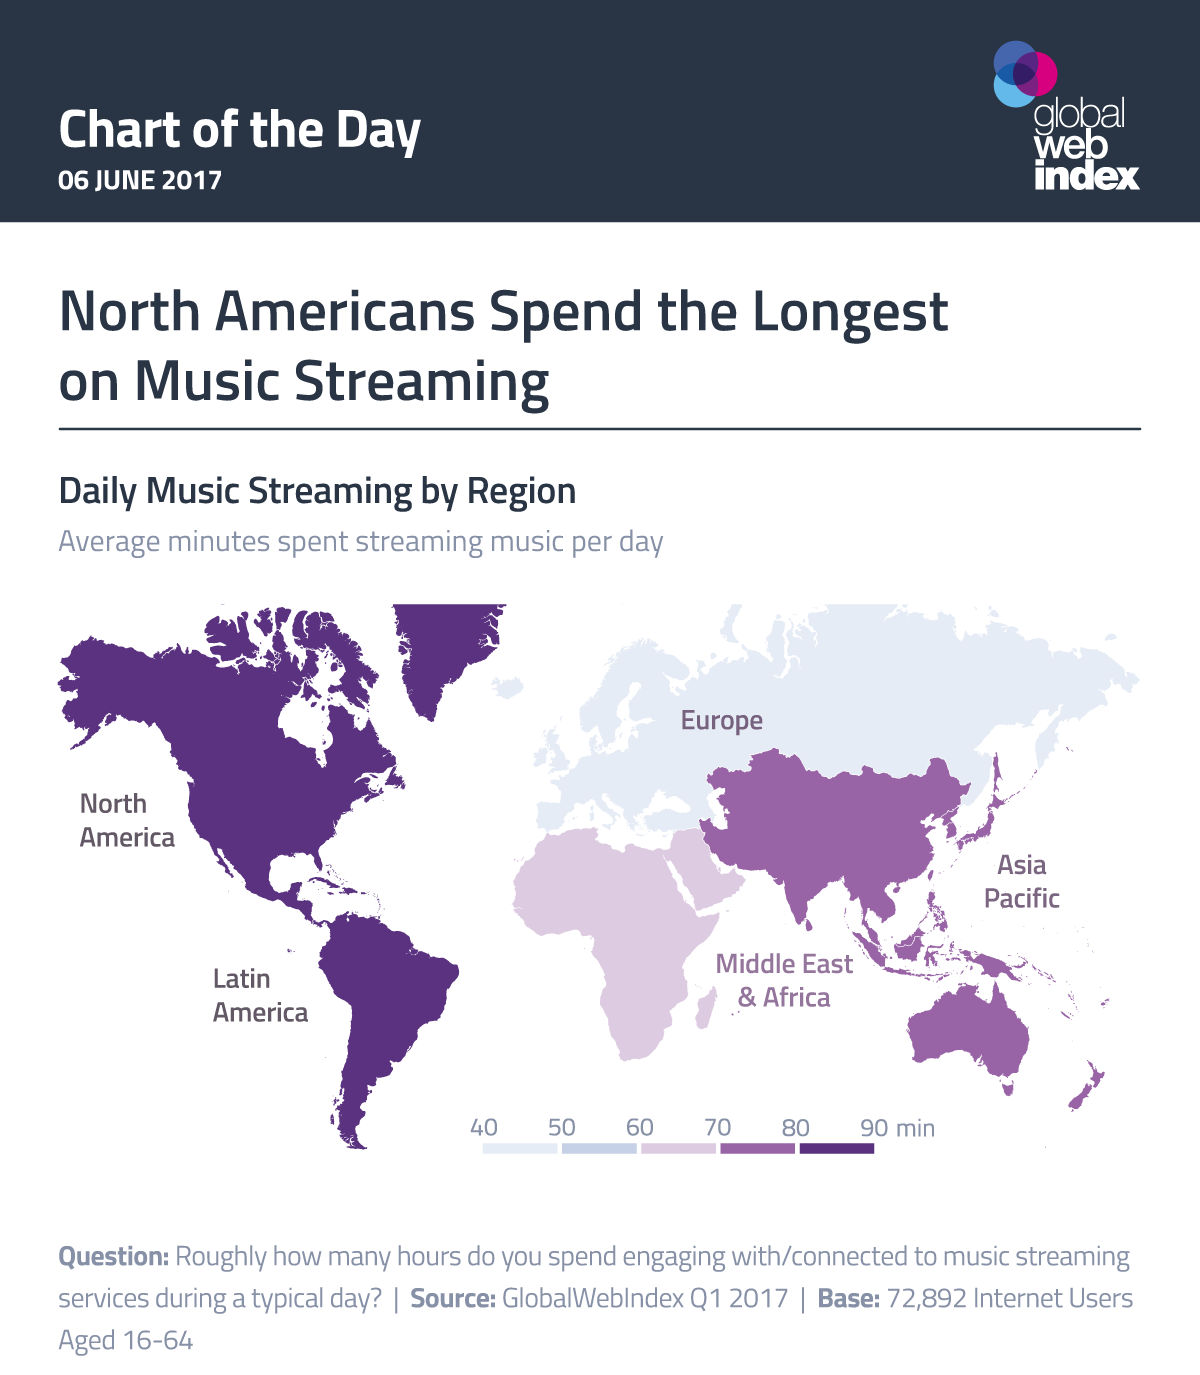 North Americans Spend the Longest on Music Streaming